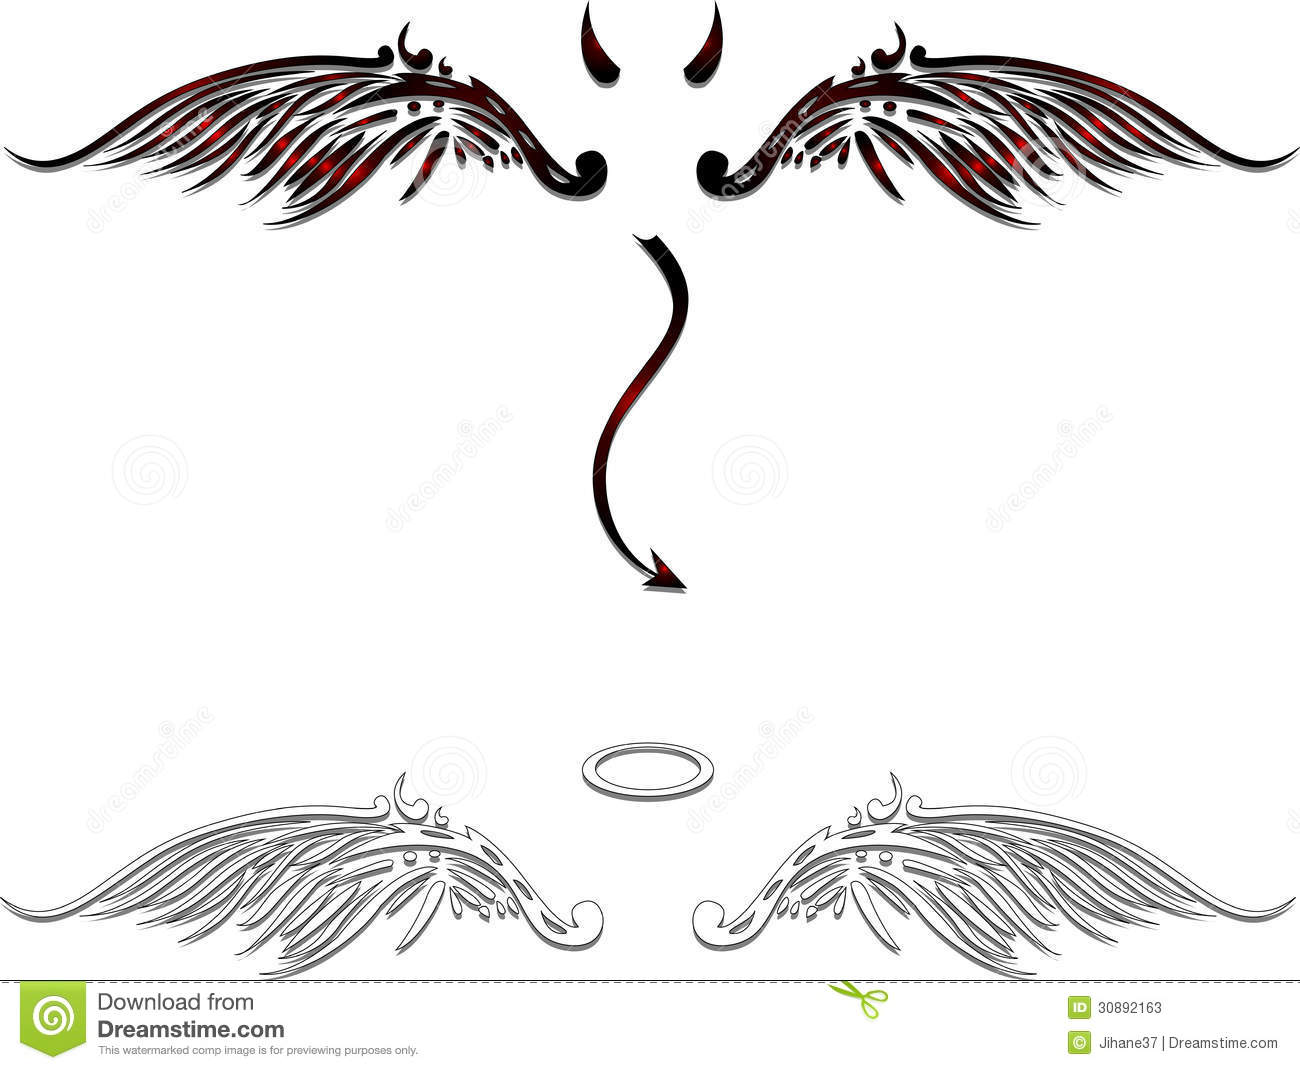 Angel and demon wings stock illustration. Image of devil